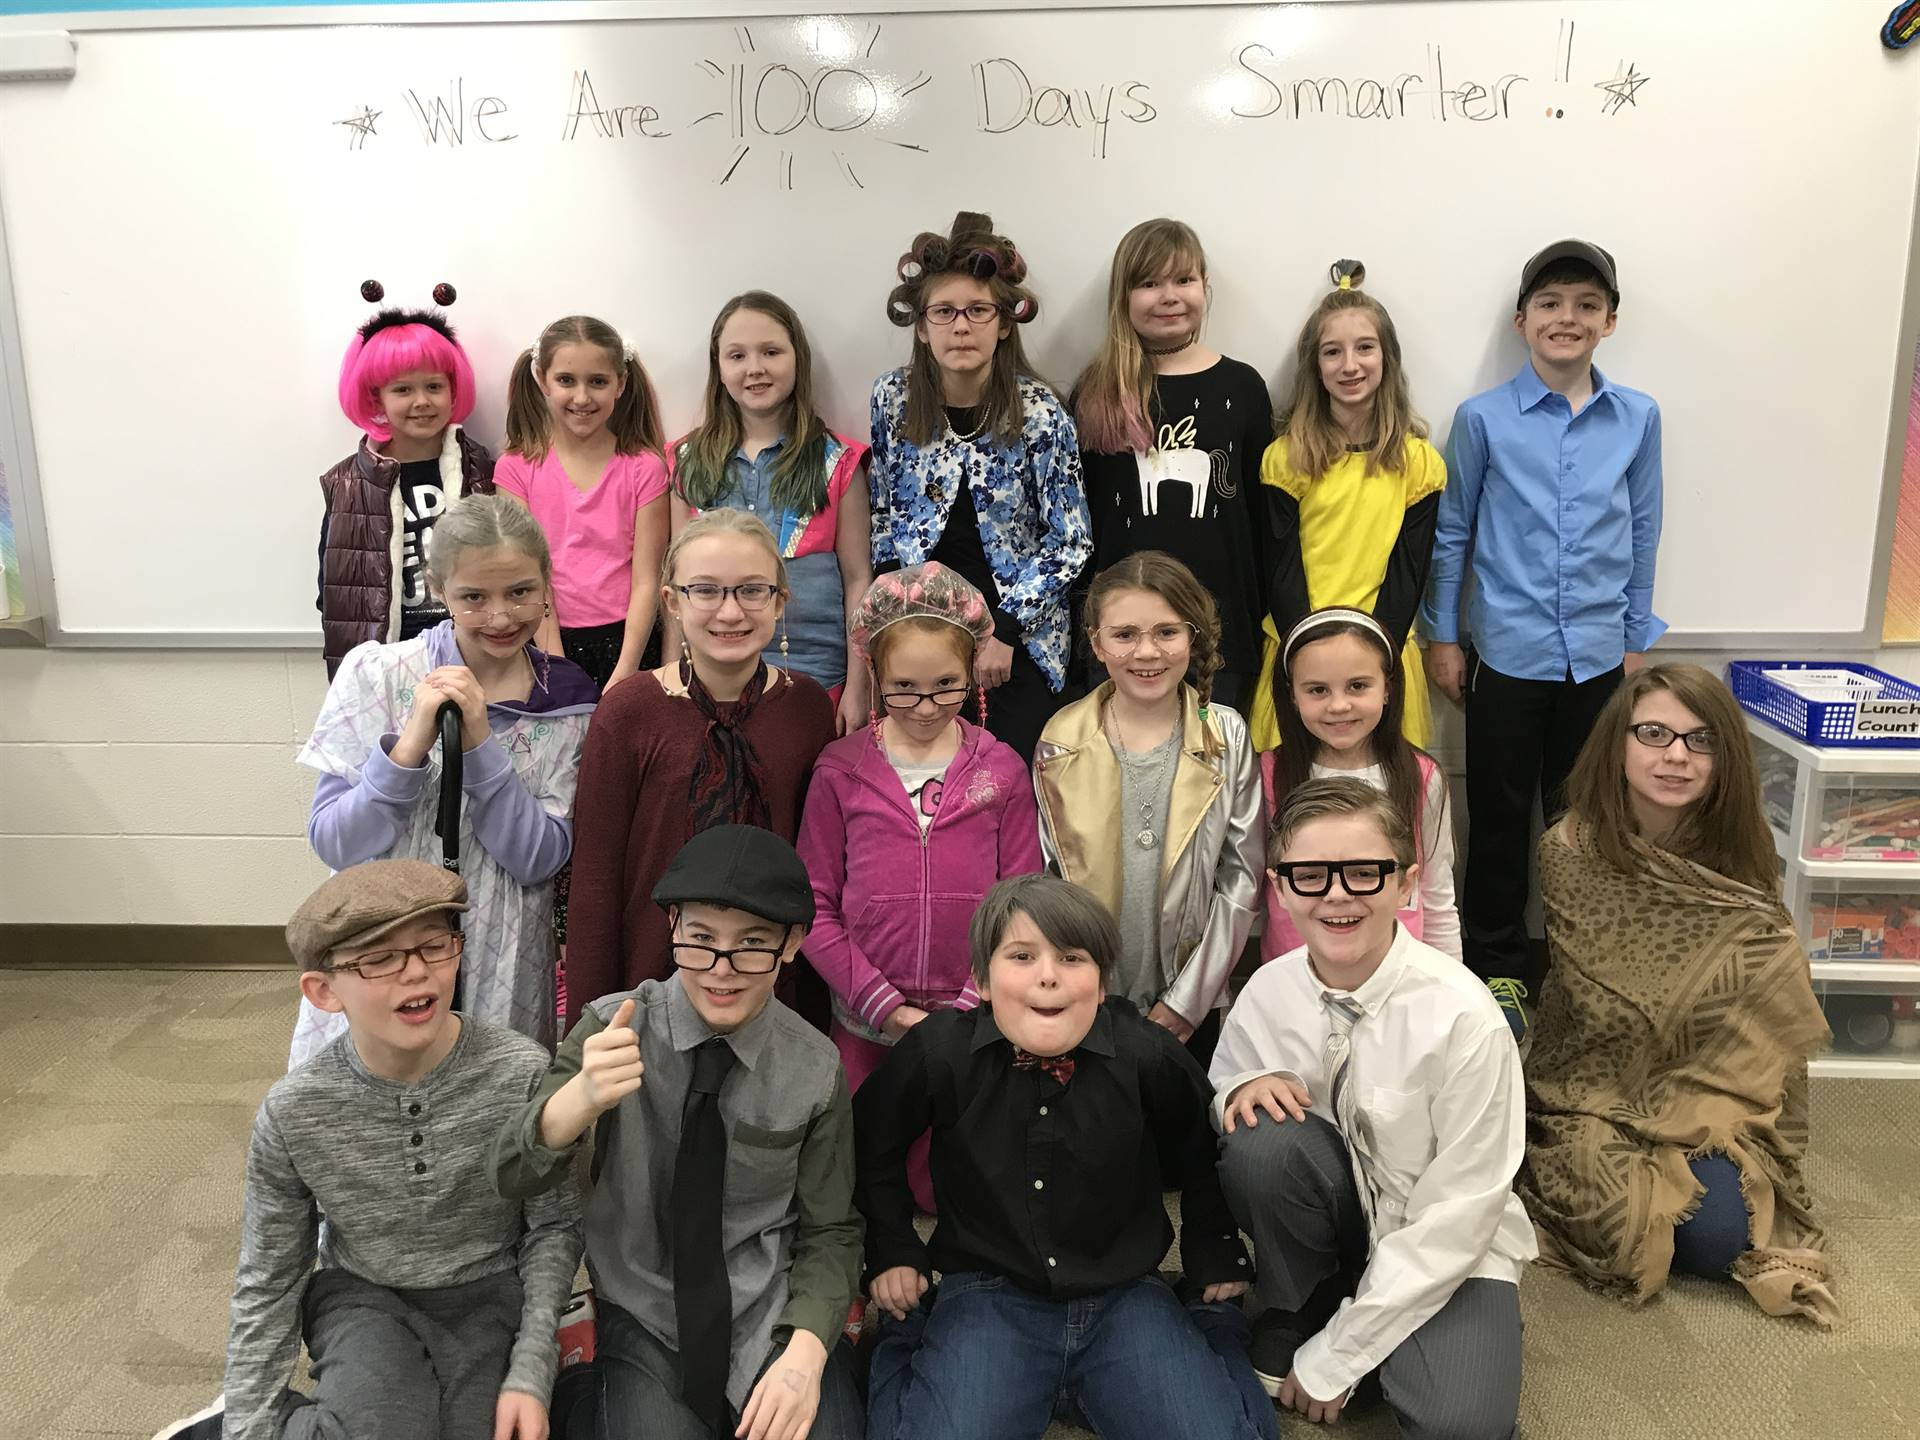 Mrs. Dressler's students on the 100th day of school